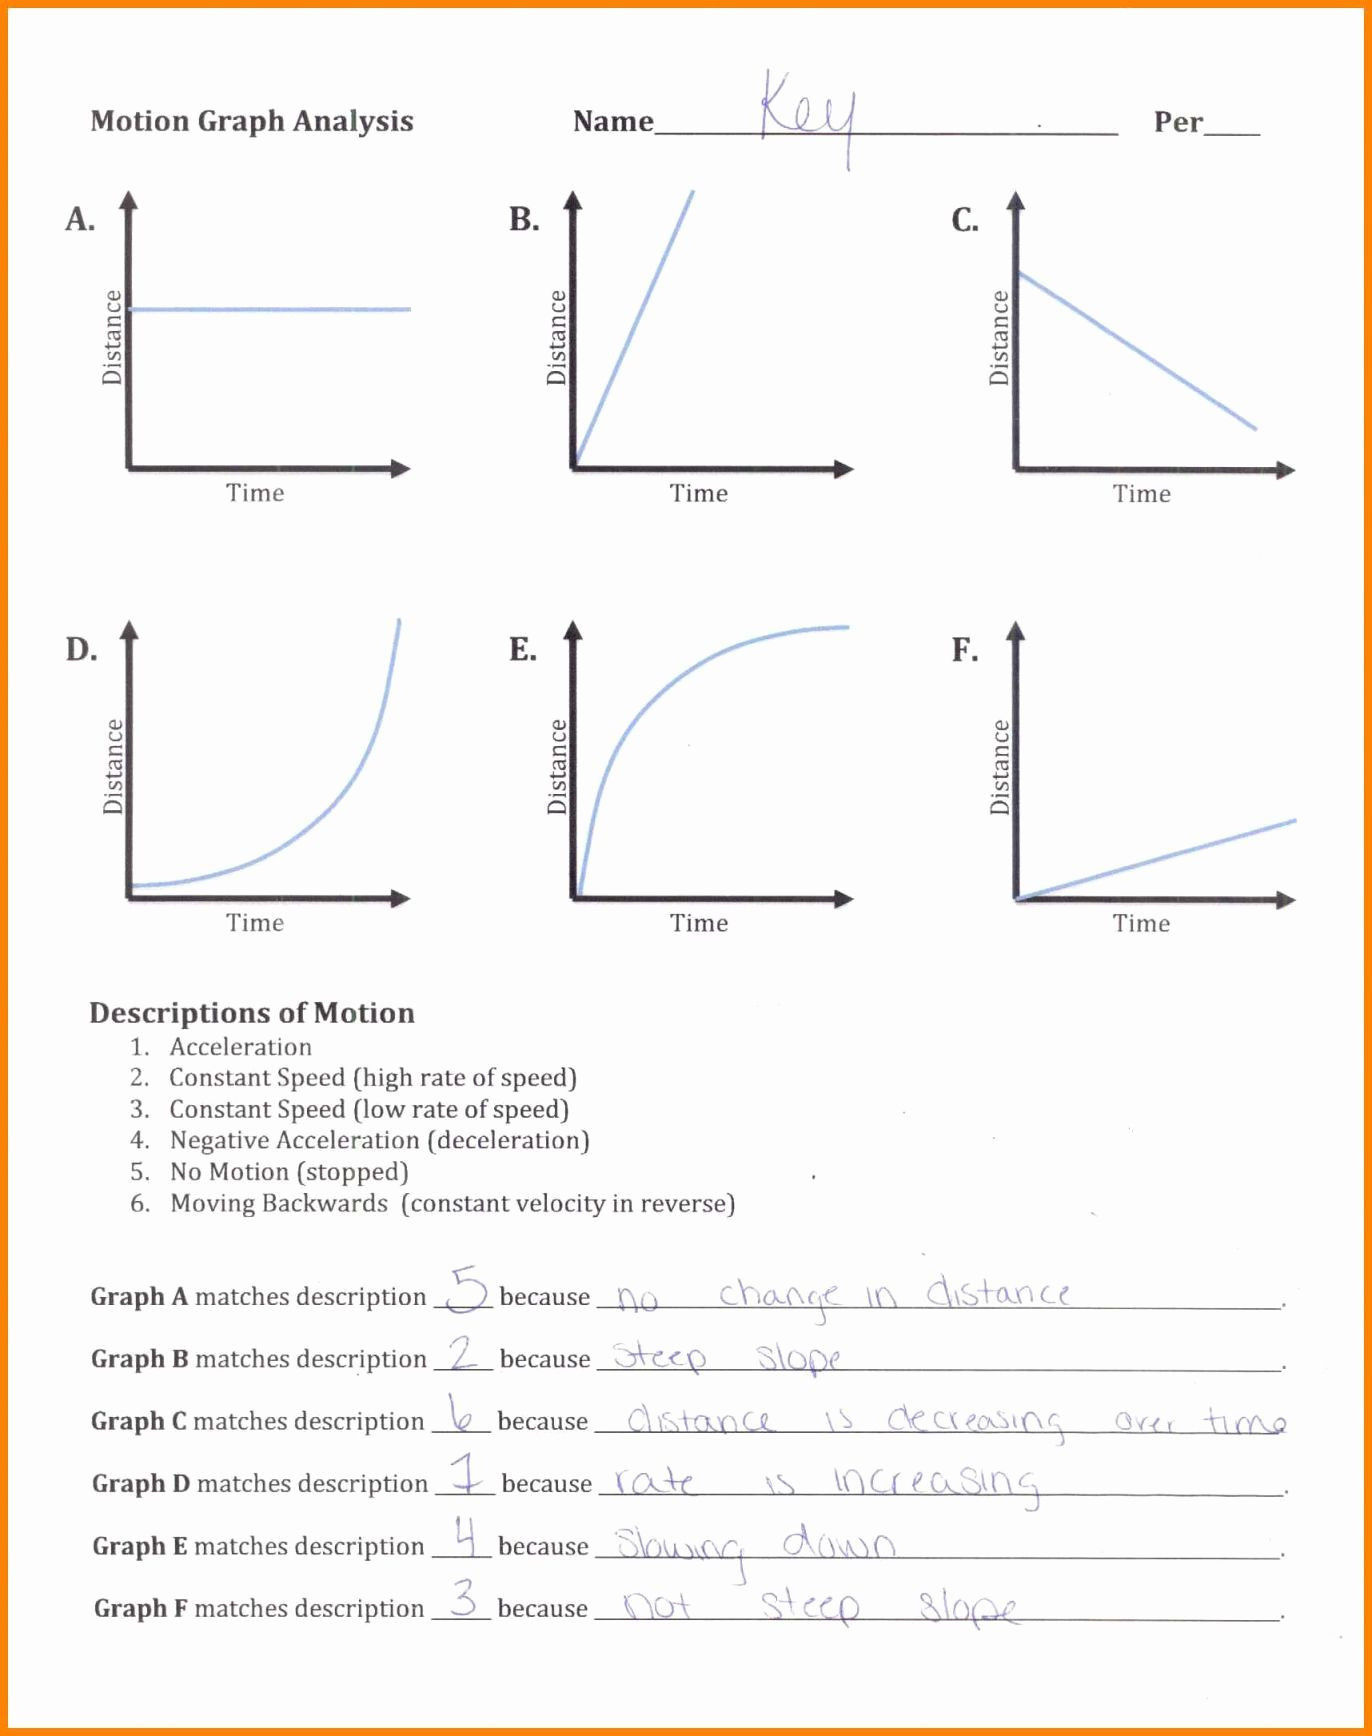 Motion Graphs Physics Worksheet Motion Graphysis Worksheet